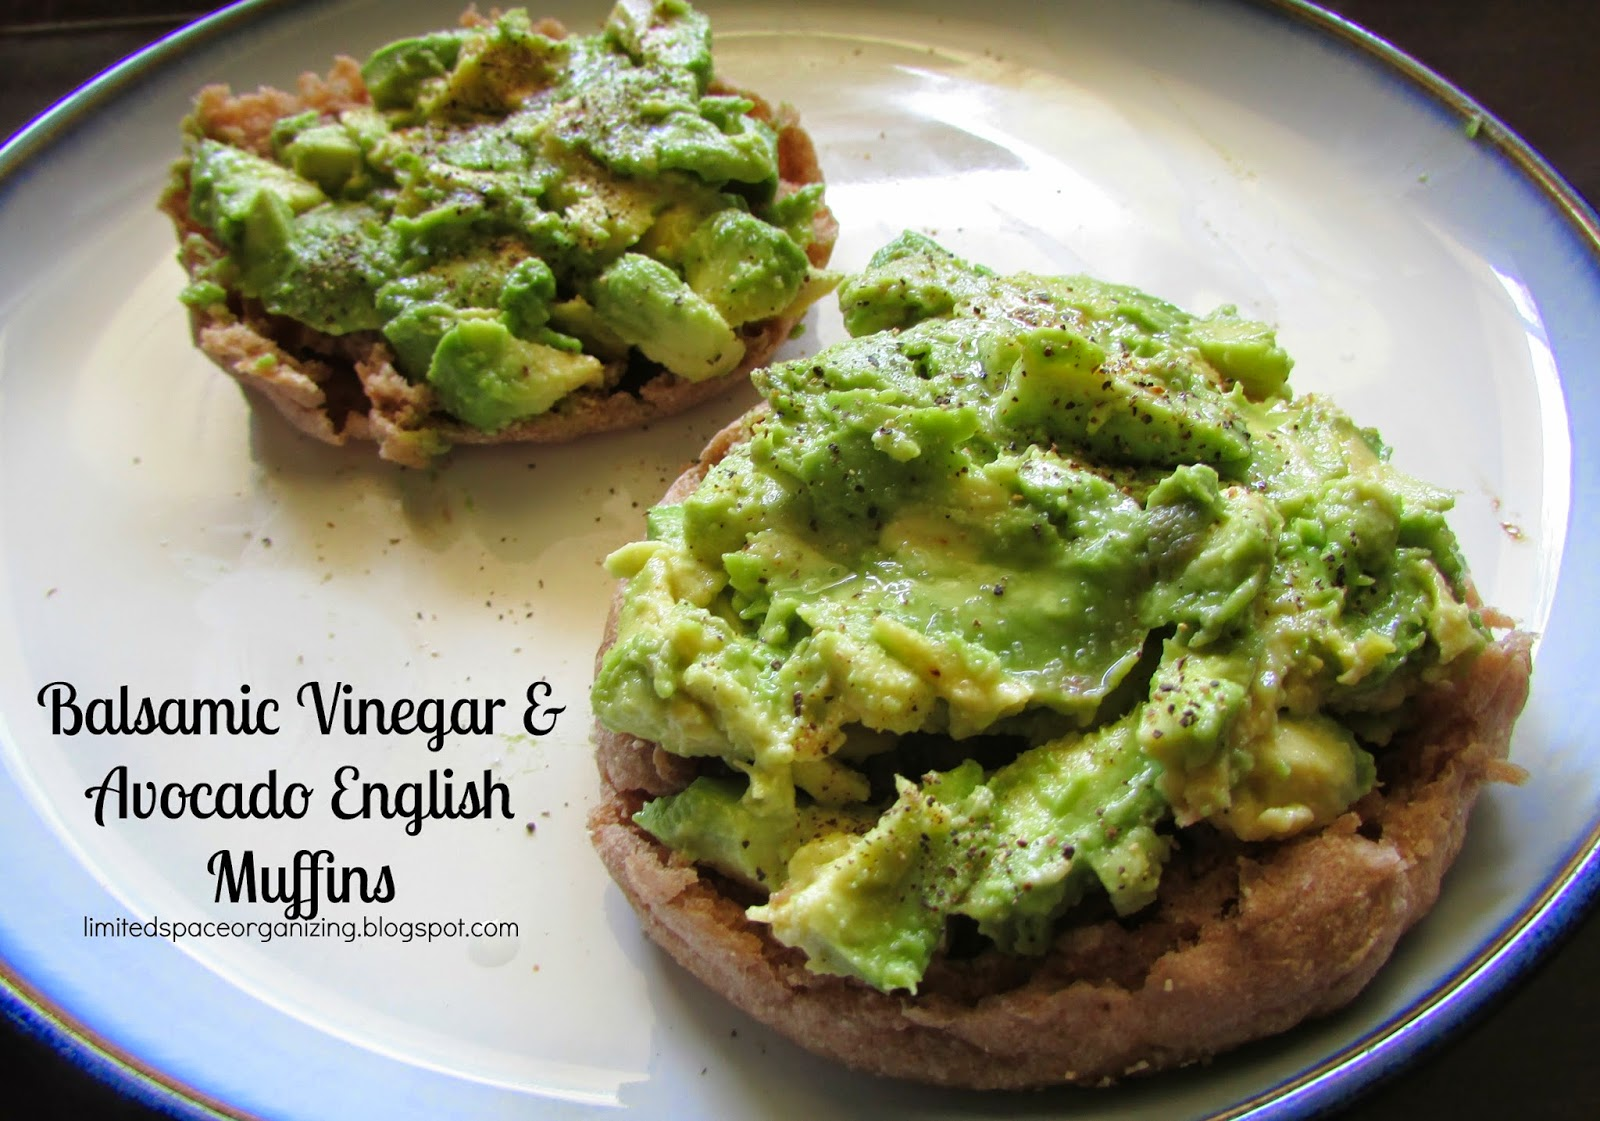 Balsamic Vinegar and Avocado English Muffins